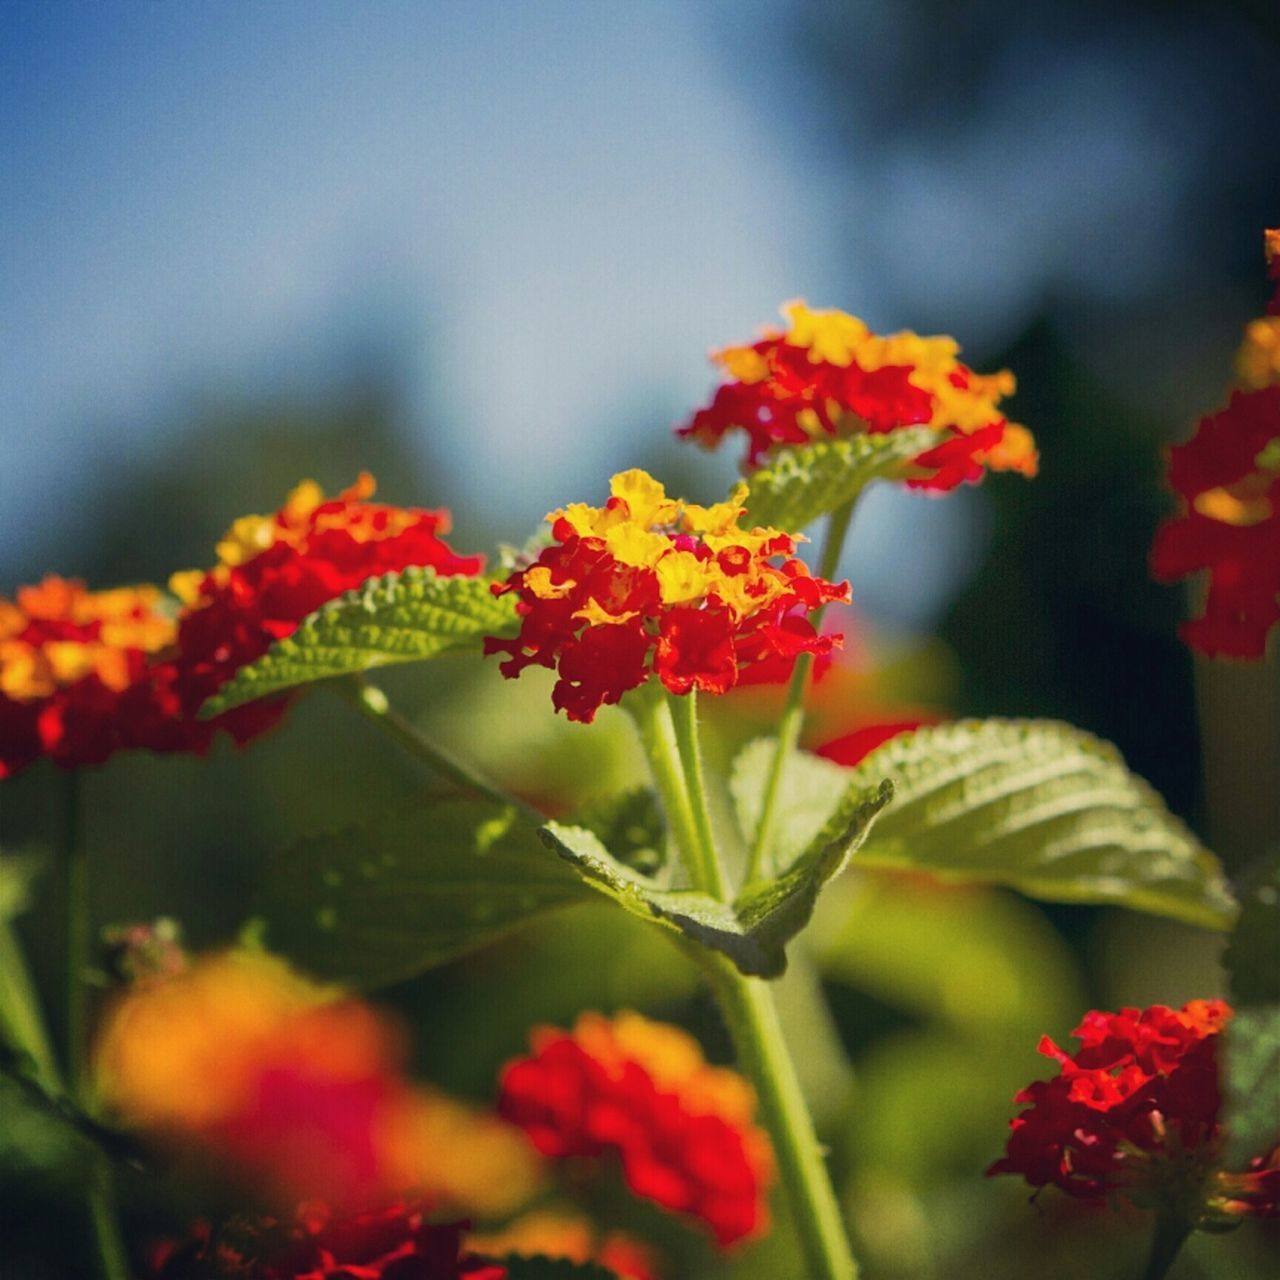 flower, growth, nature, beauty in nature, plant, fragility, red, freshness, petal, no people, blooming, day, lantana camara, outdoors, leaf, flower head, close-up